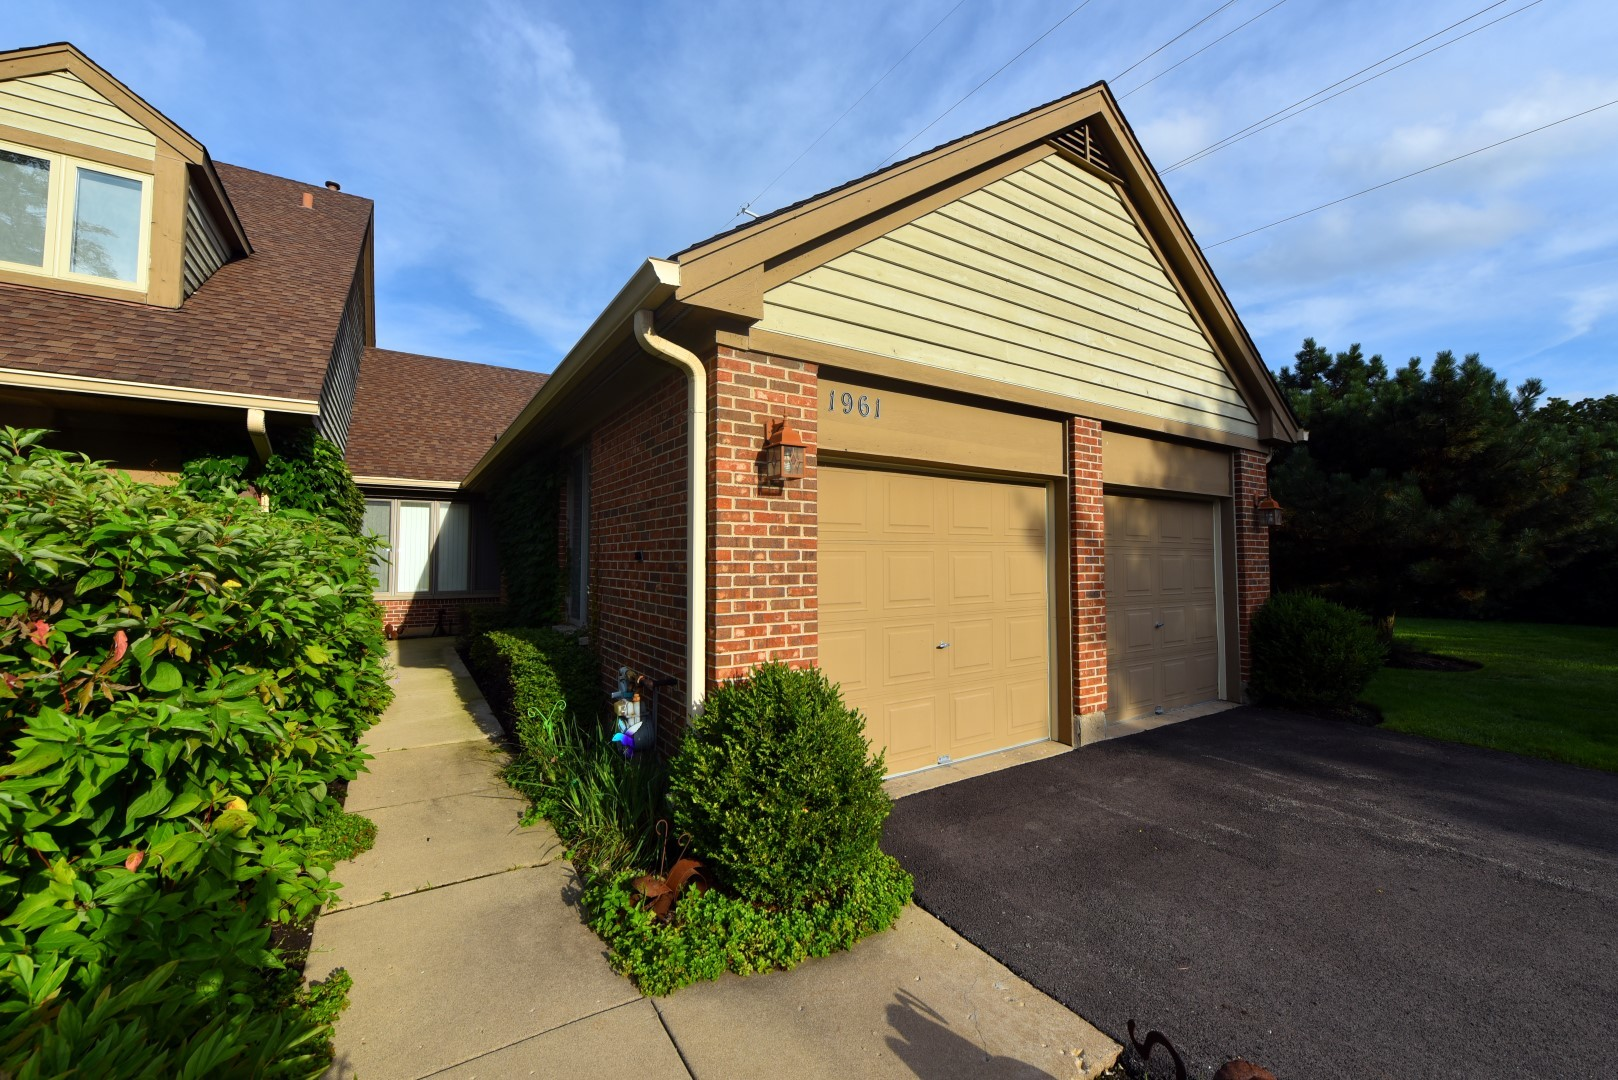 1961 Koehling Road, Northbrook in Cook County, IL 60062 Home for Sale